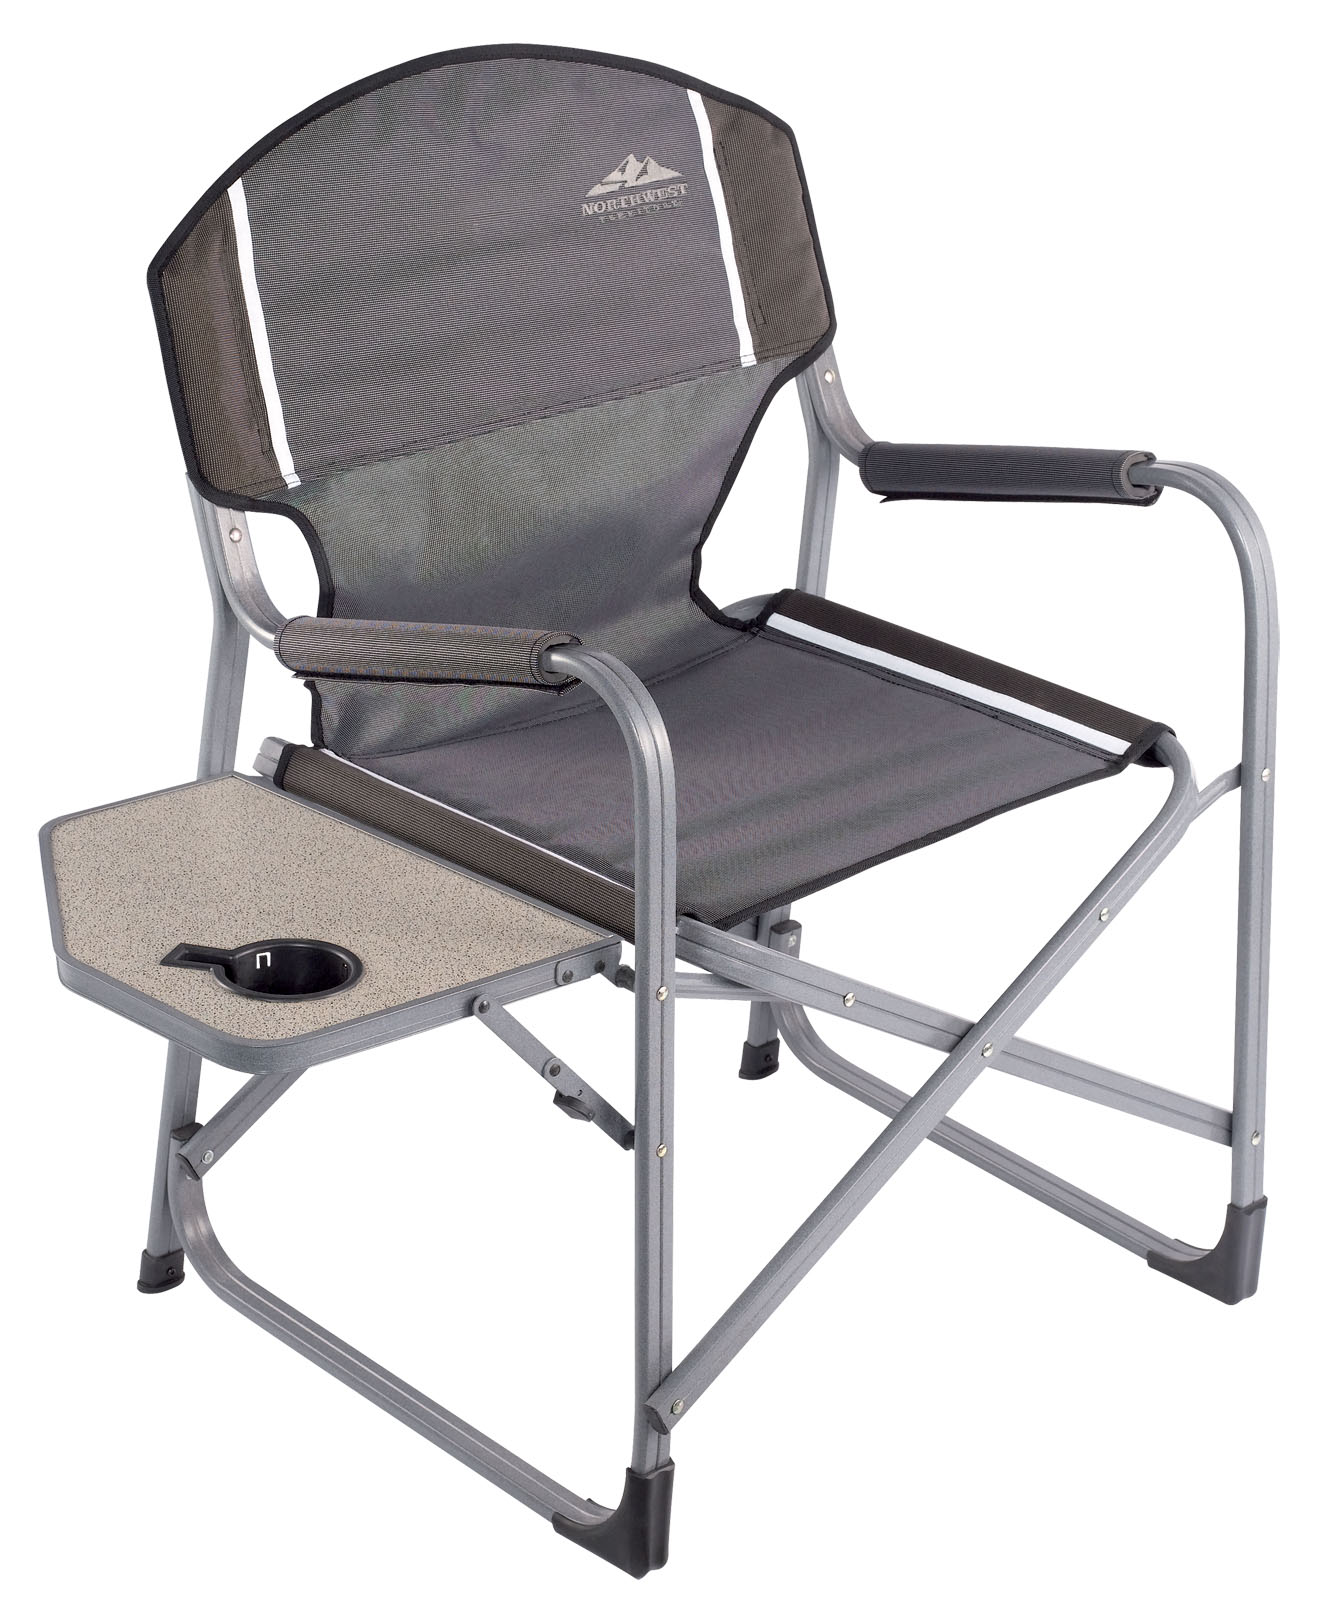 Fold Up Outdoor Chairs Northwest Territory Director 39s Chair With Fold Up Side